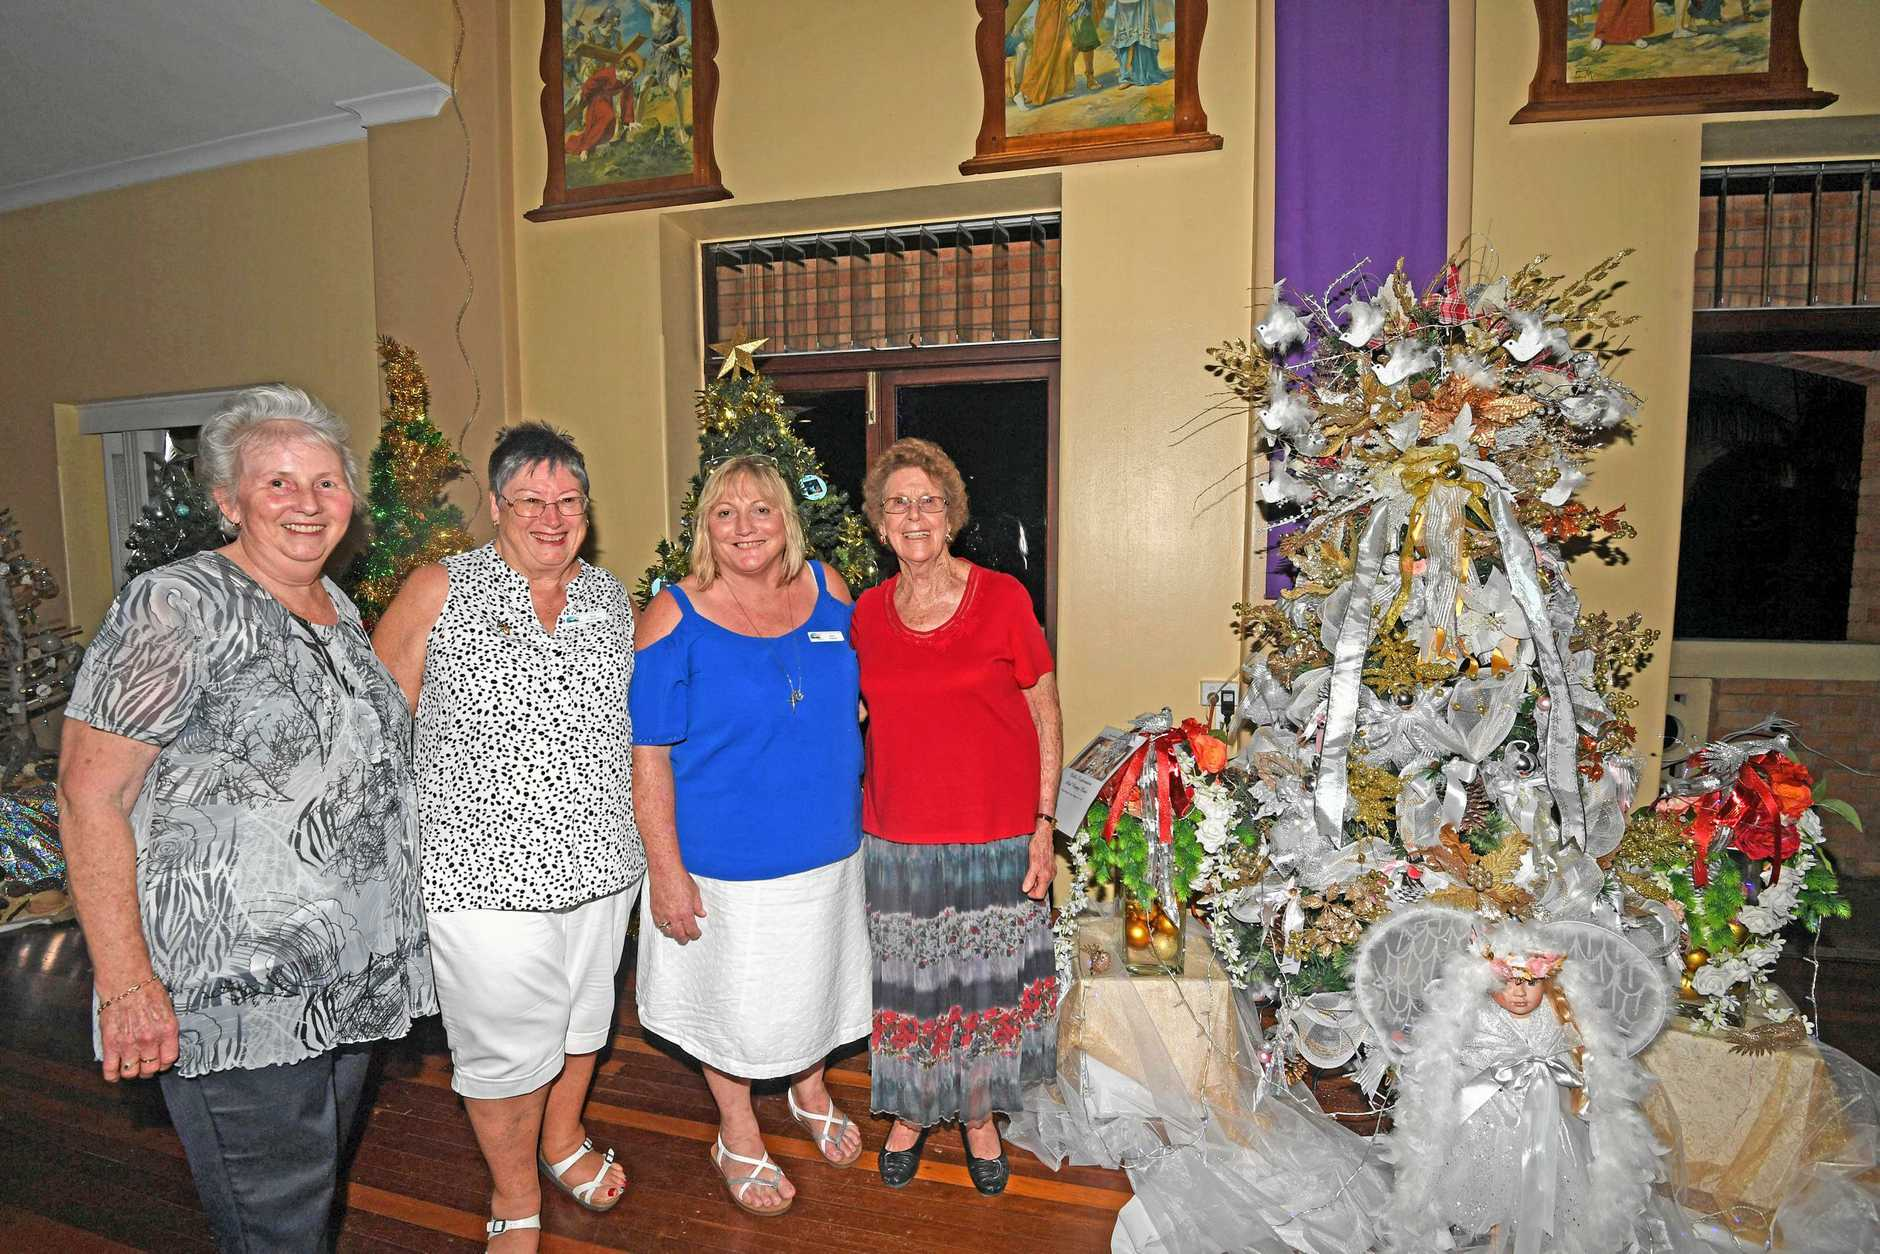 Shirley Doyle, Sue Crampton, Bev Walker and Val Deans Christmas Decorations